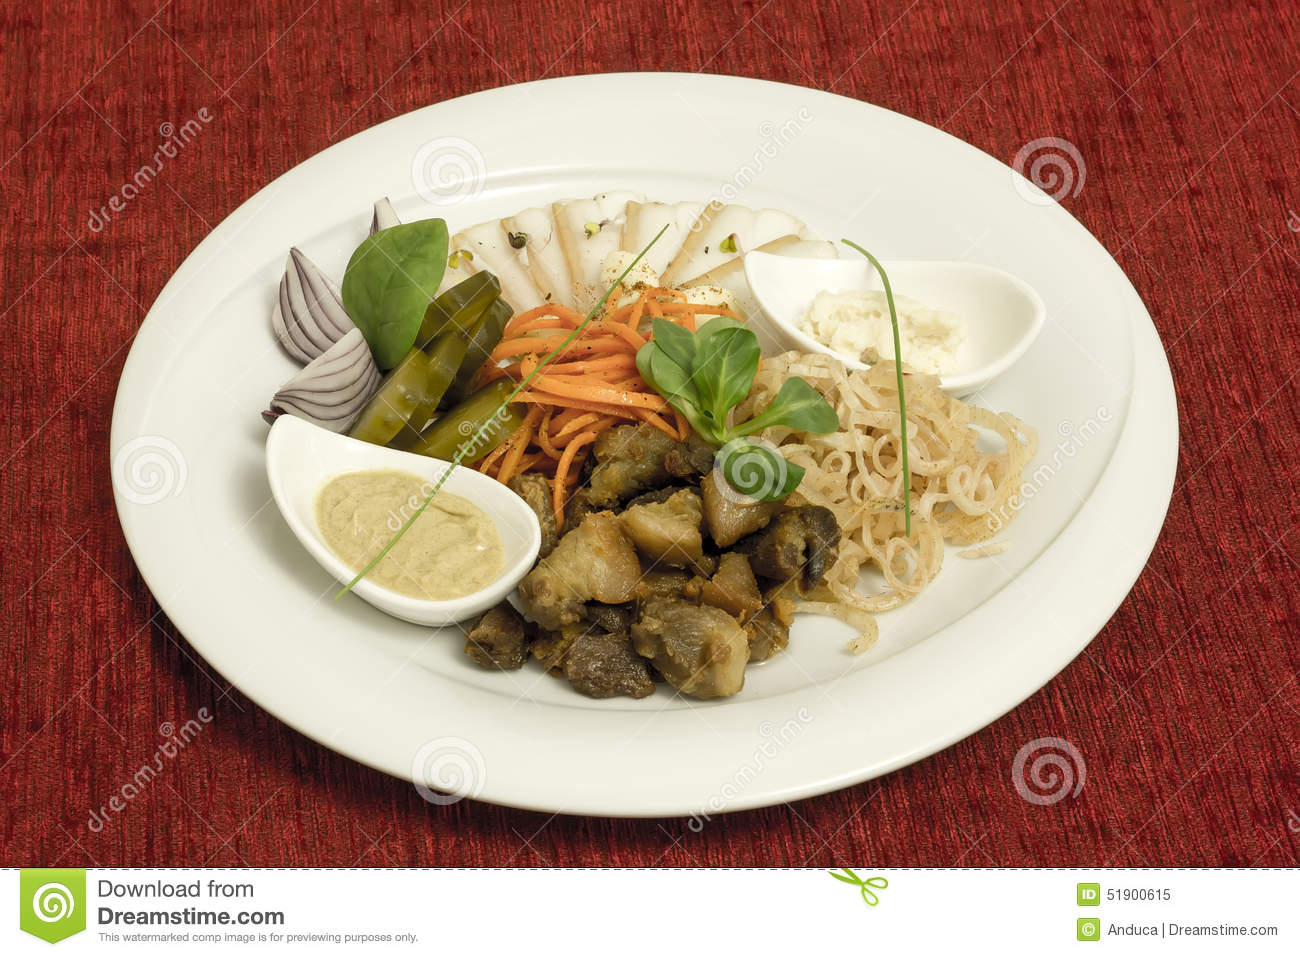 Traditional russian food stock photo image 51900615 for Authentic russian cuisine